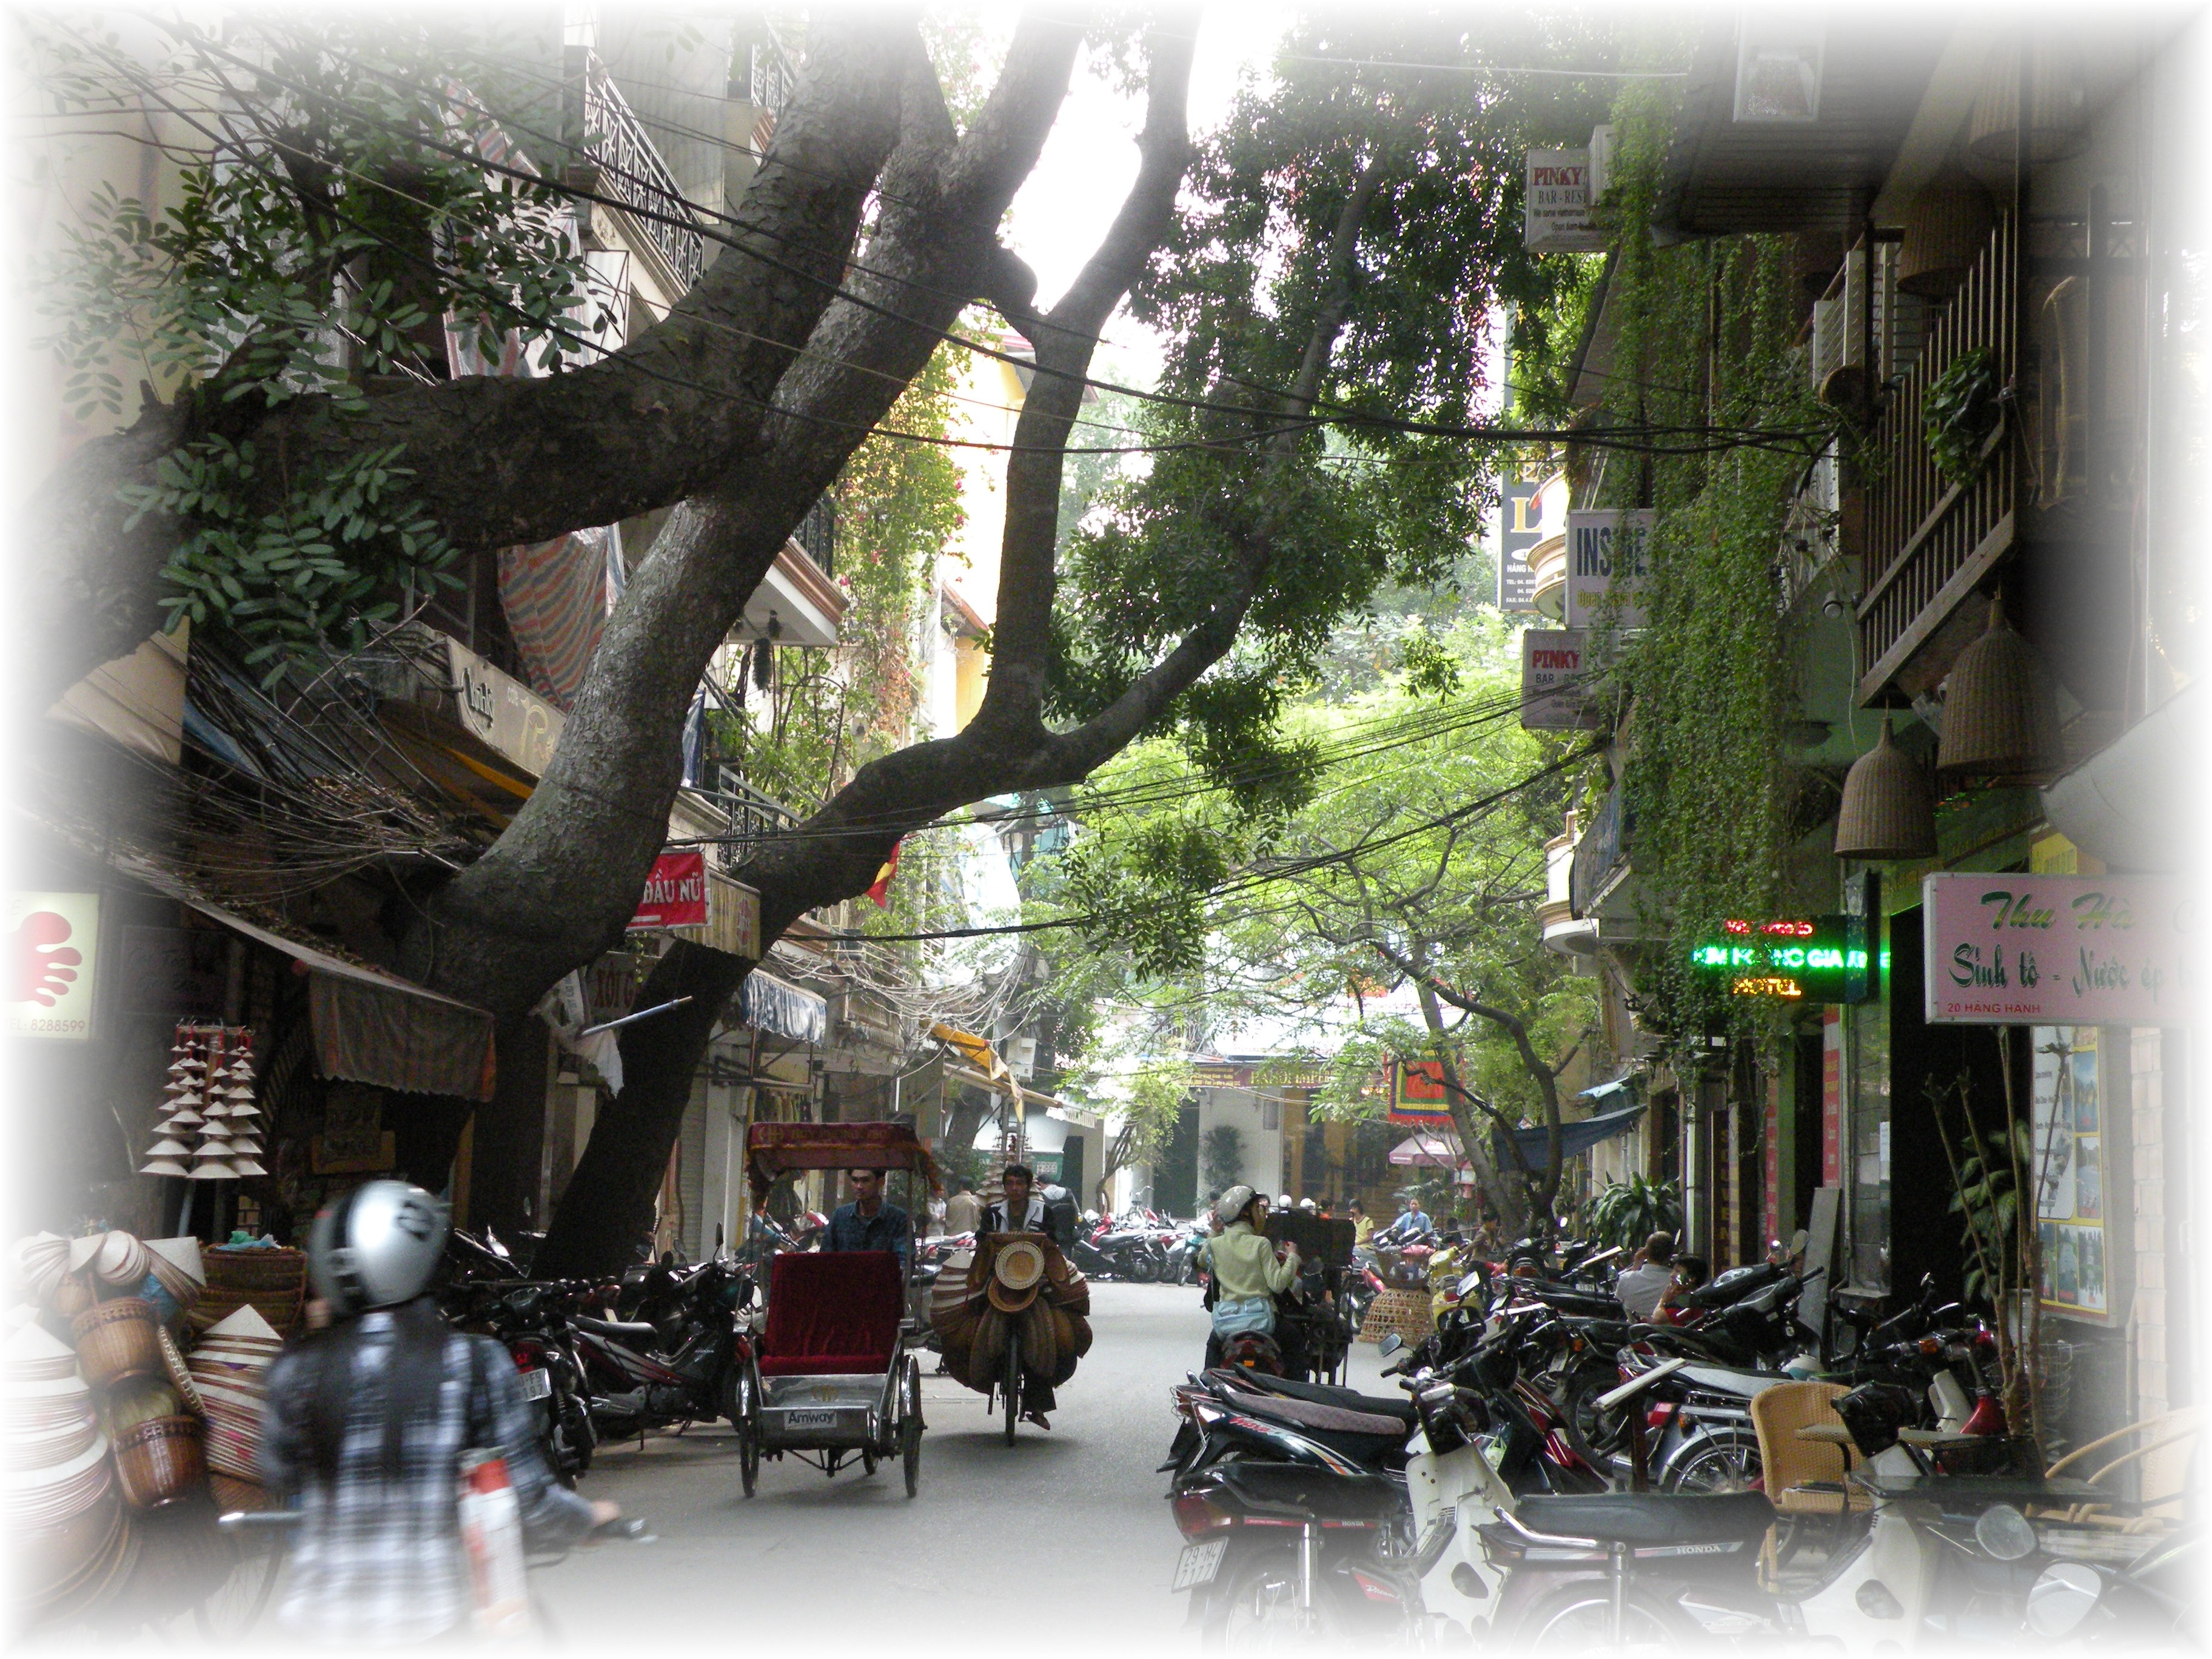 No Visible Restrictions on Recording Life in Hanoi